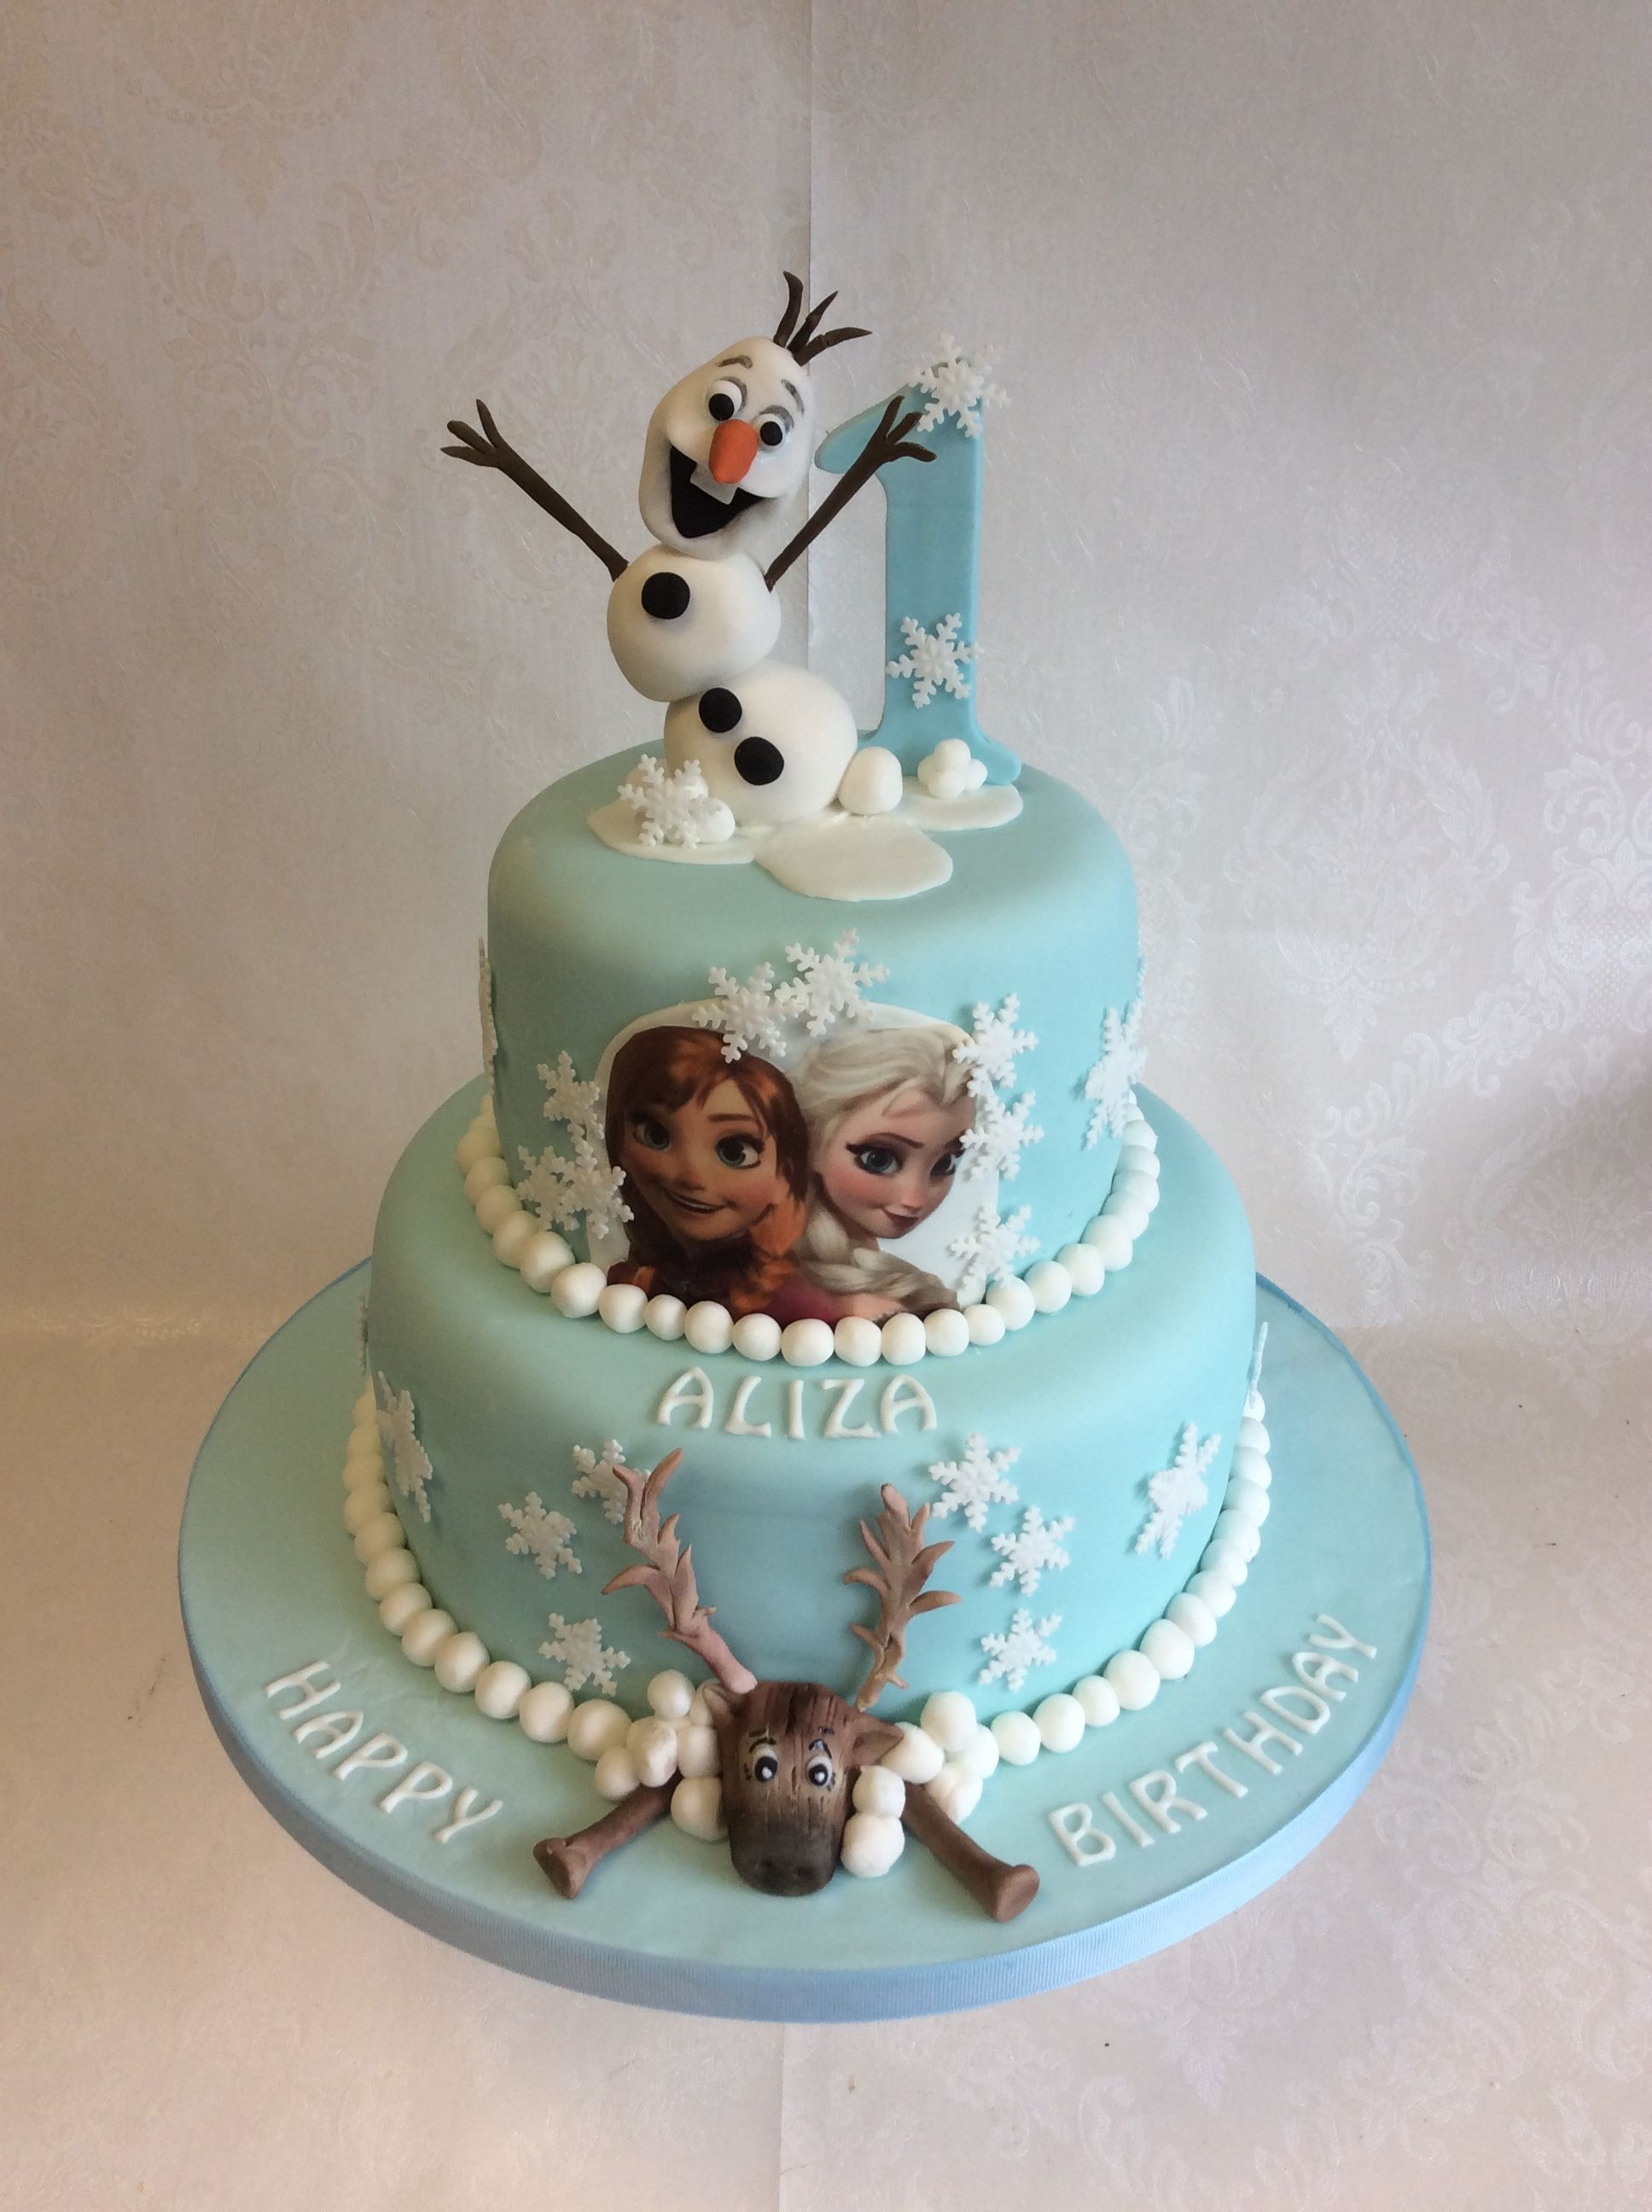 2 tier cake with handmade Olaf and Sven characters plus Elsa and Ana